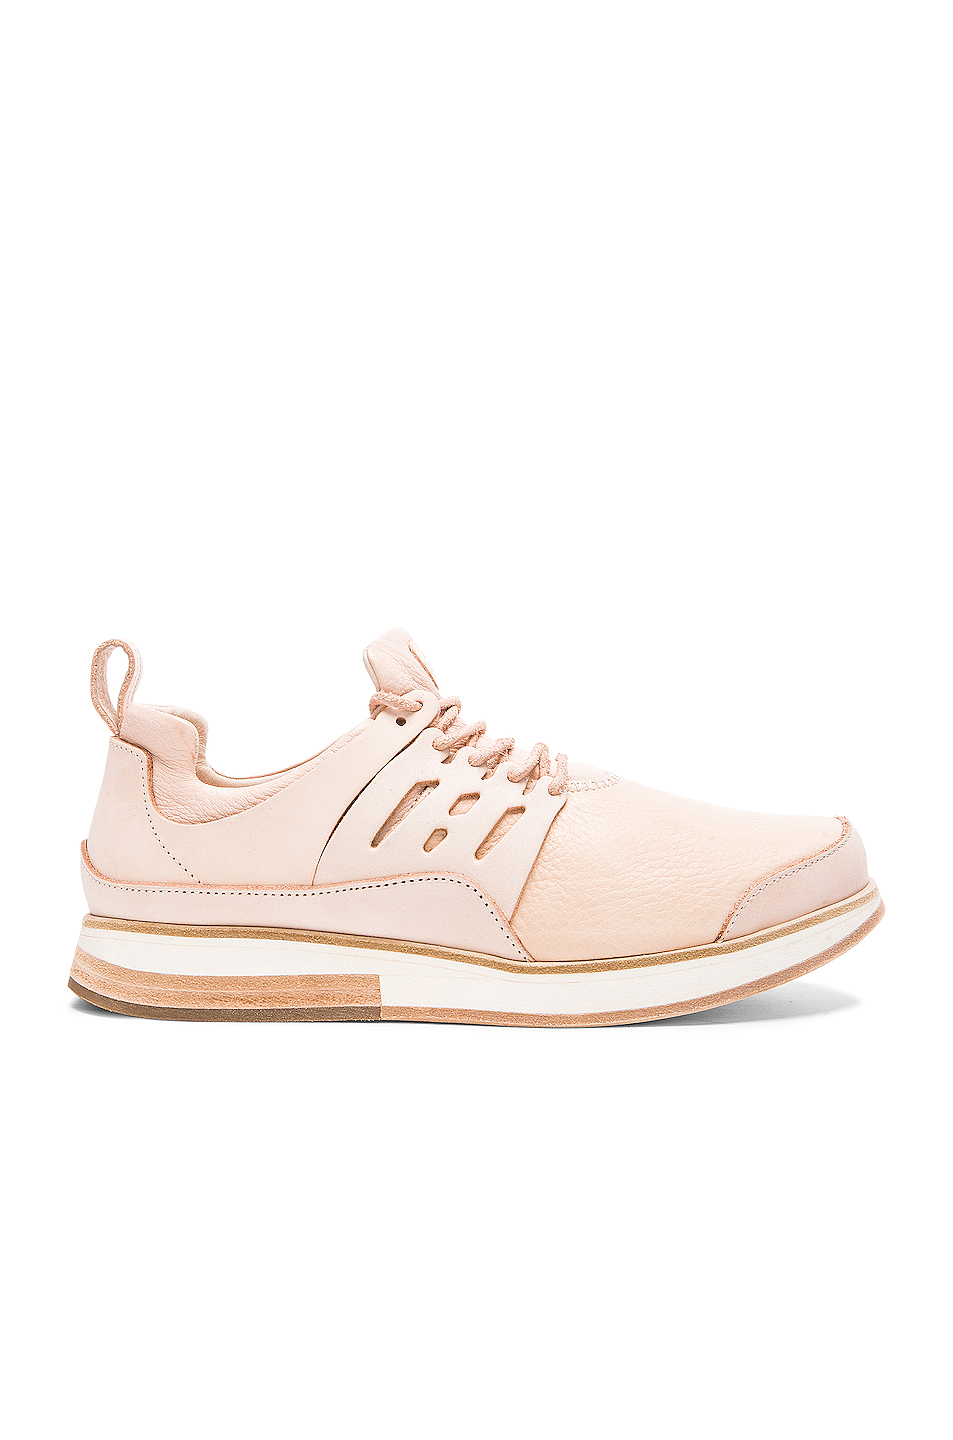 Hender Scheme Manual Industrial Product 12 in Neutrals